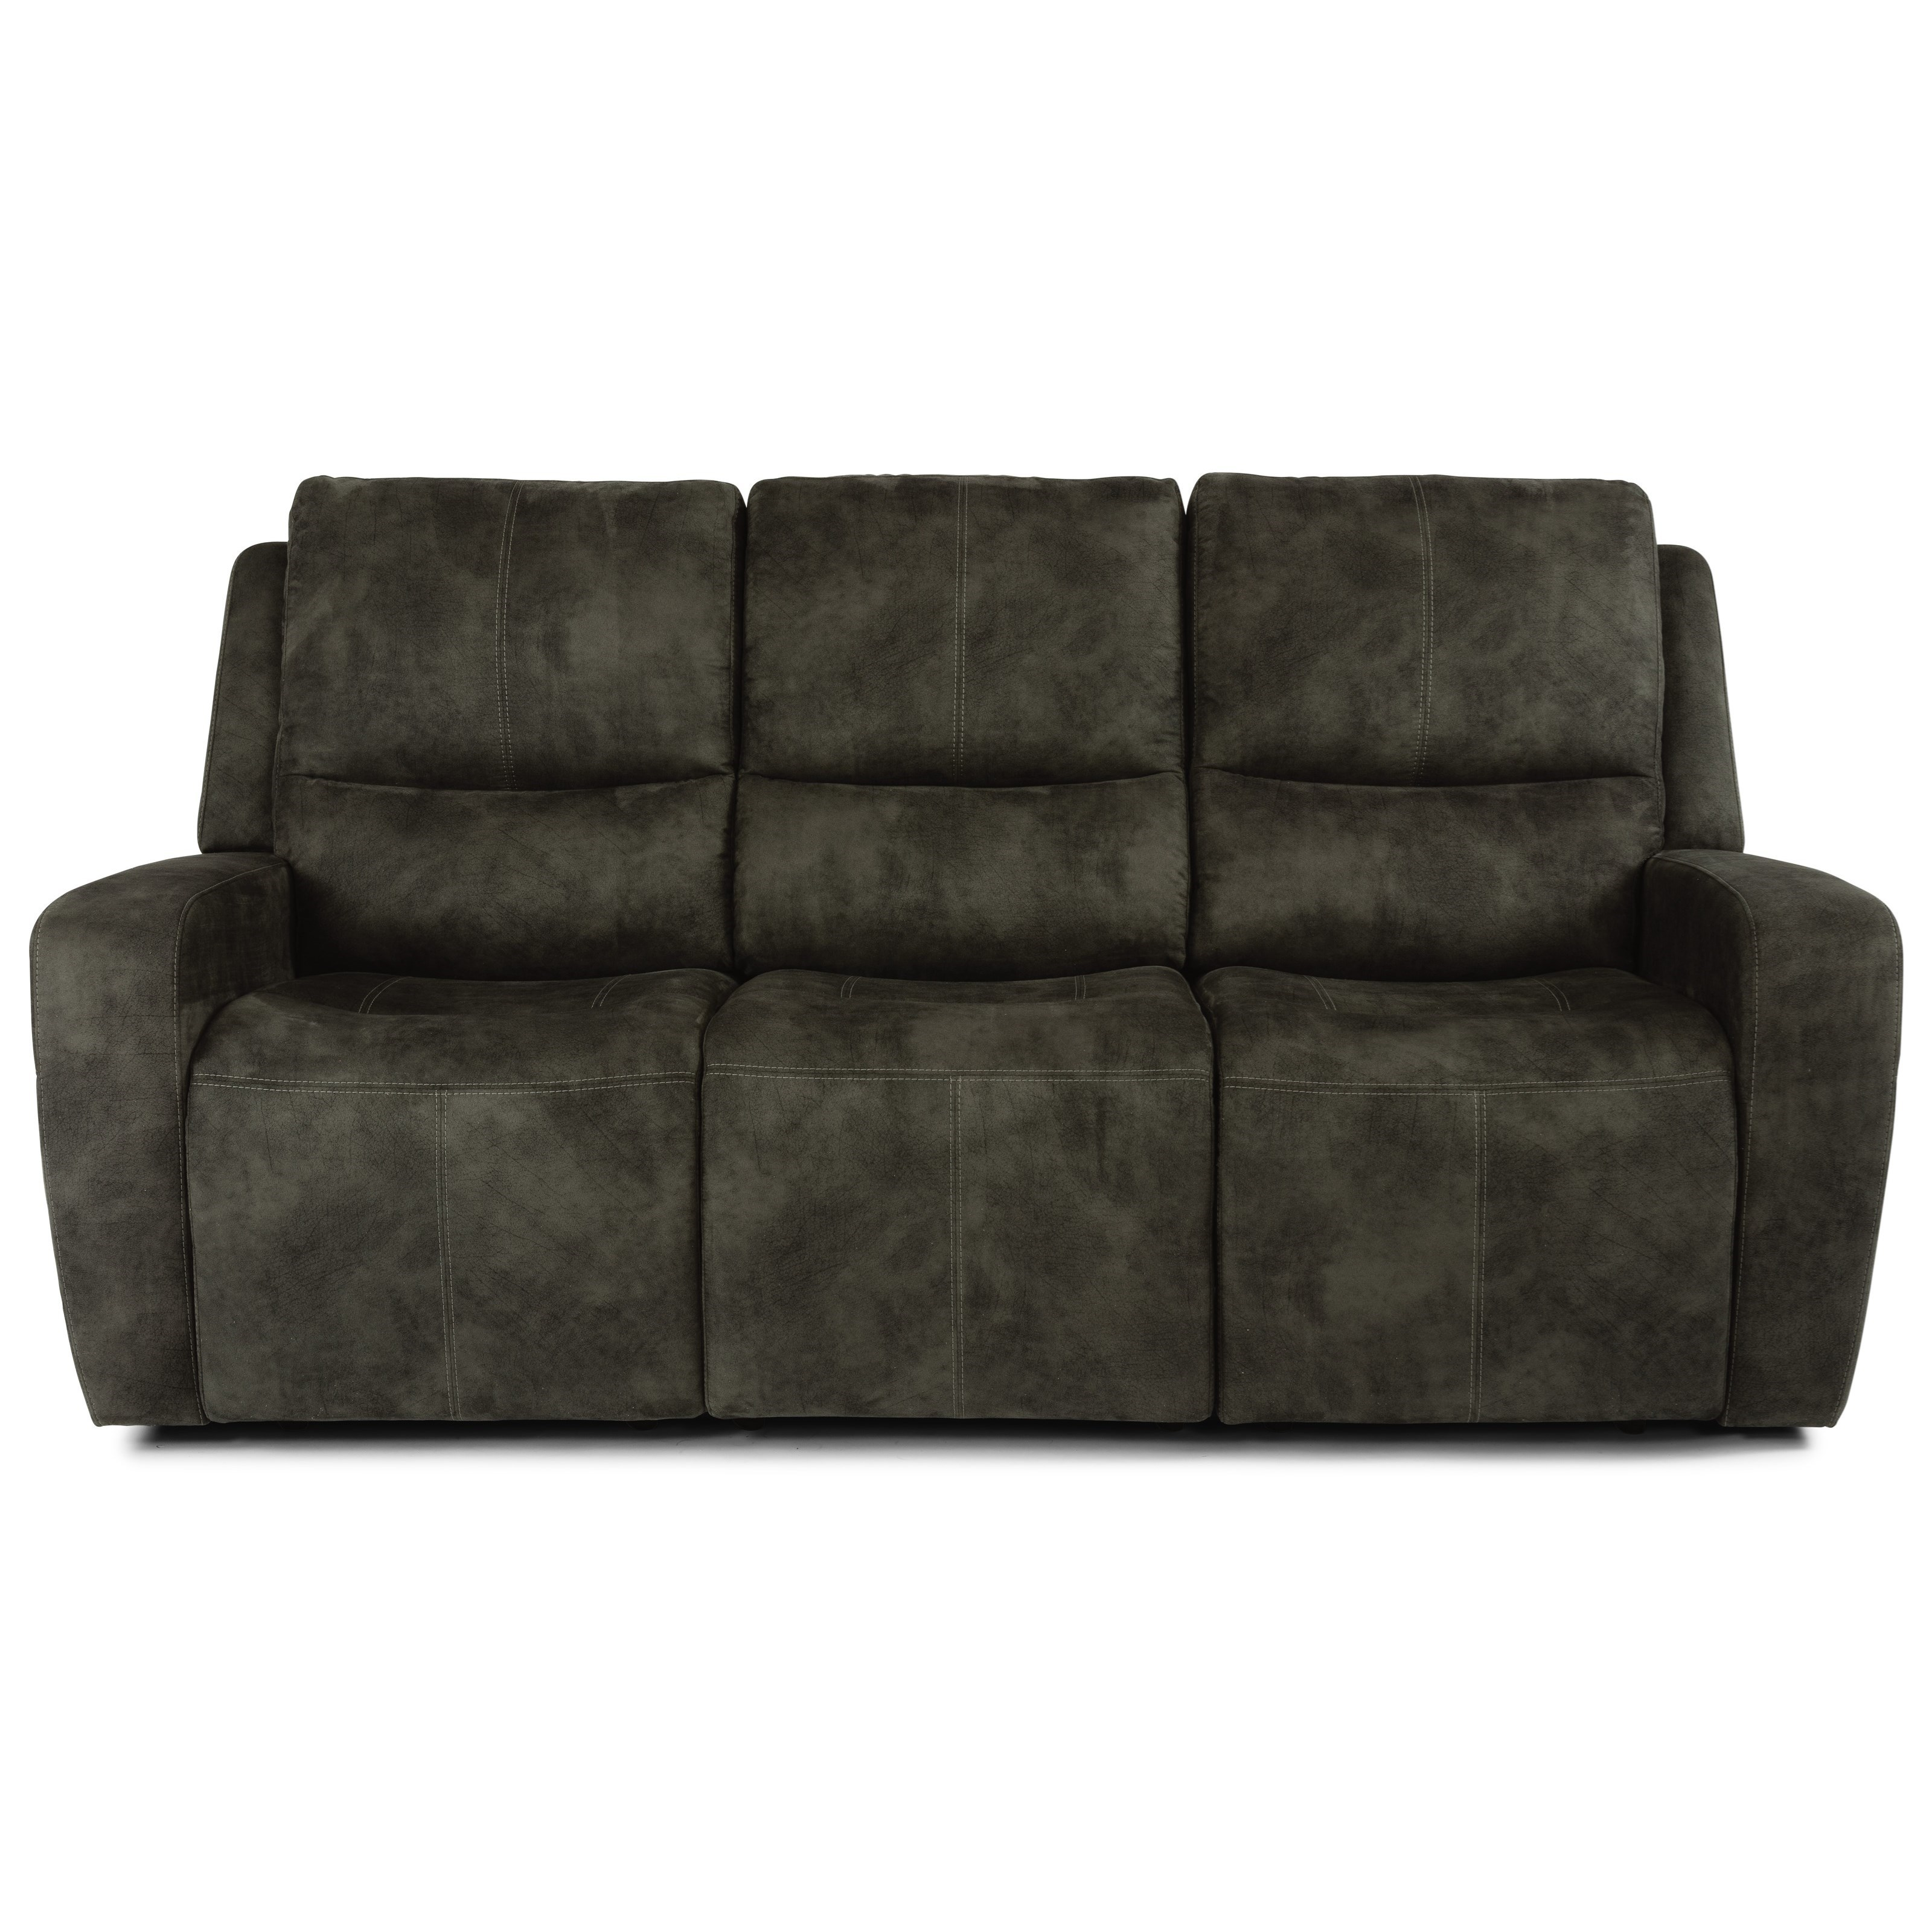 Latitudes - Aiden Power Reclining Sofa by Flexsteel at Furniture and ApplianceMart